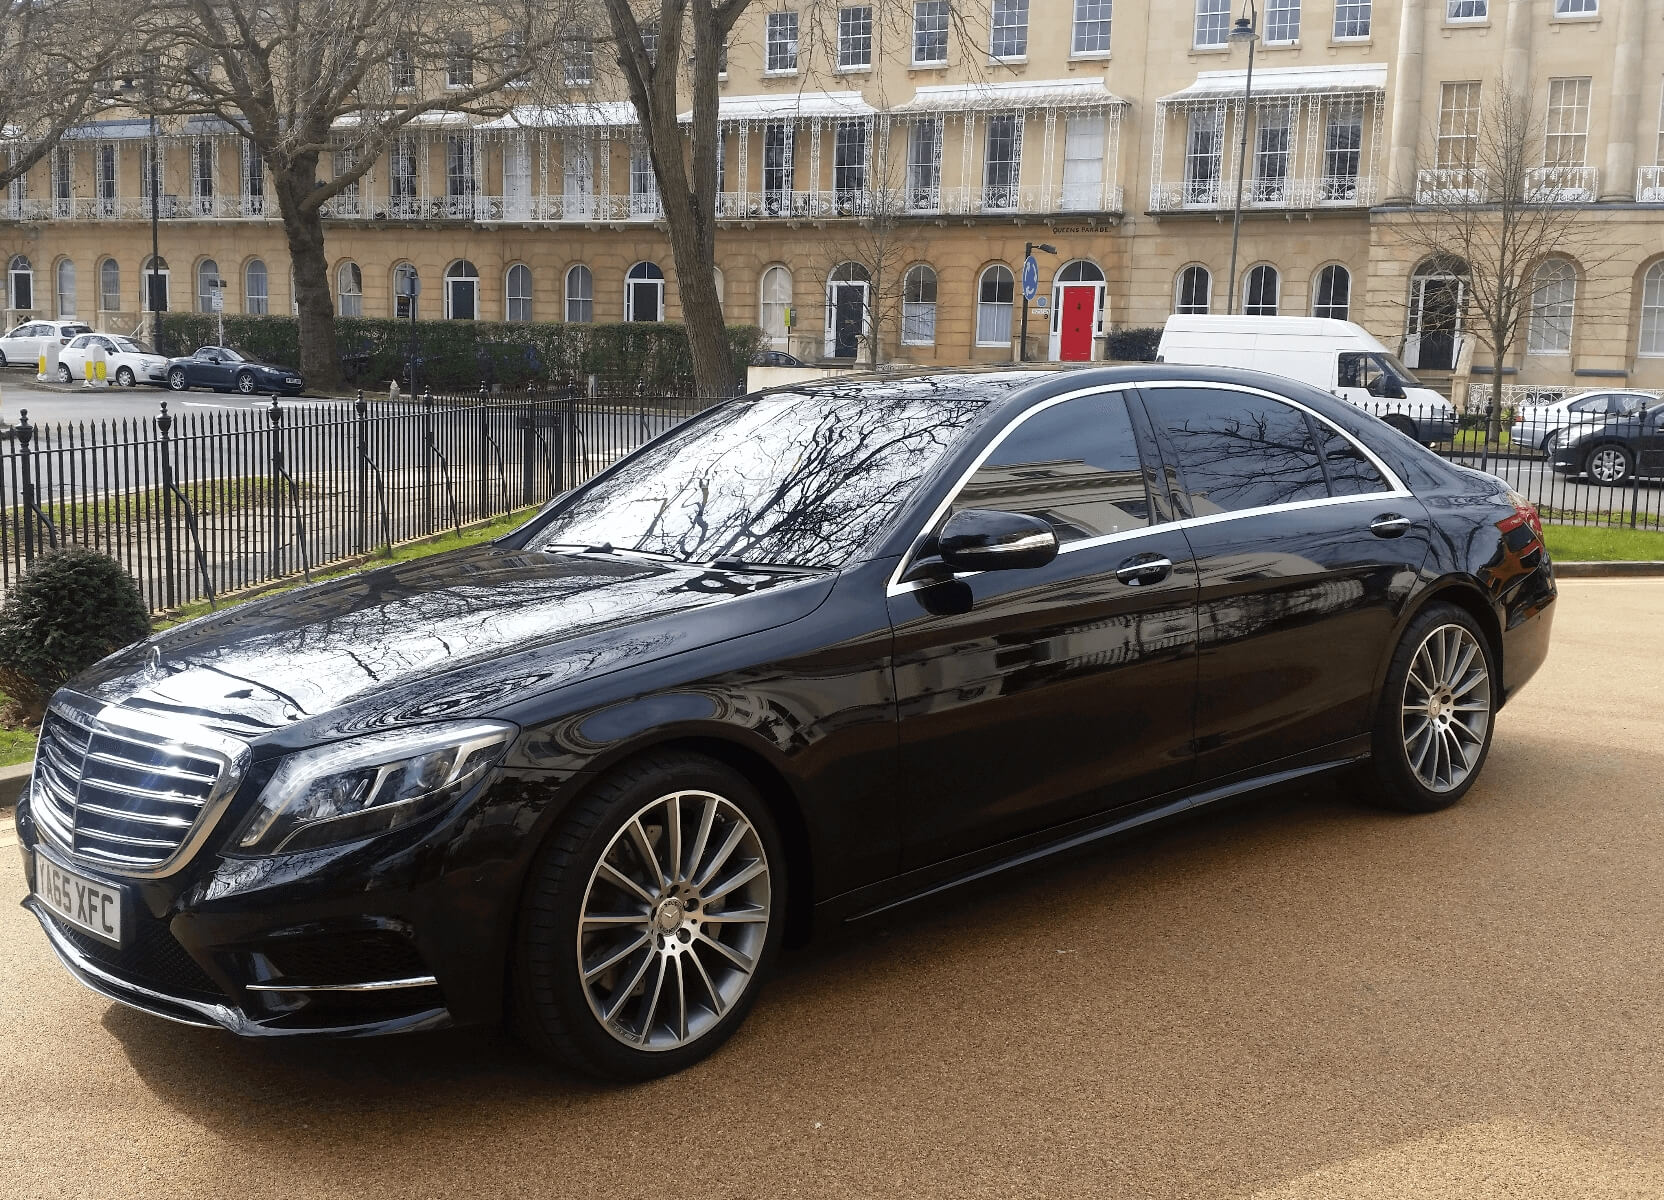 Luxury Chauffeur Cars Gloucester Cirencester Cheltenham Stroud